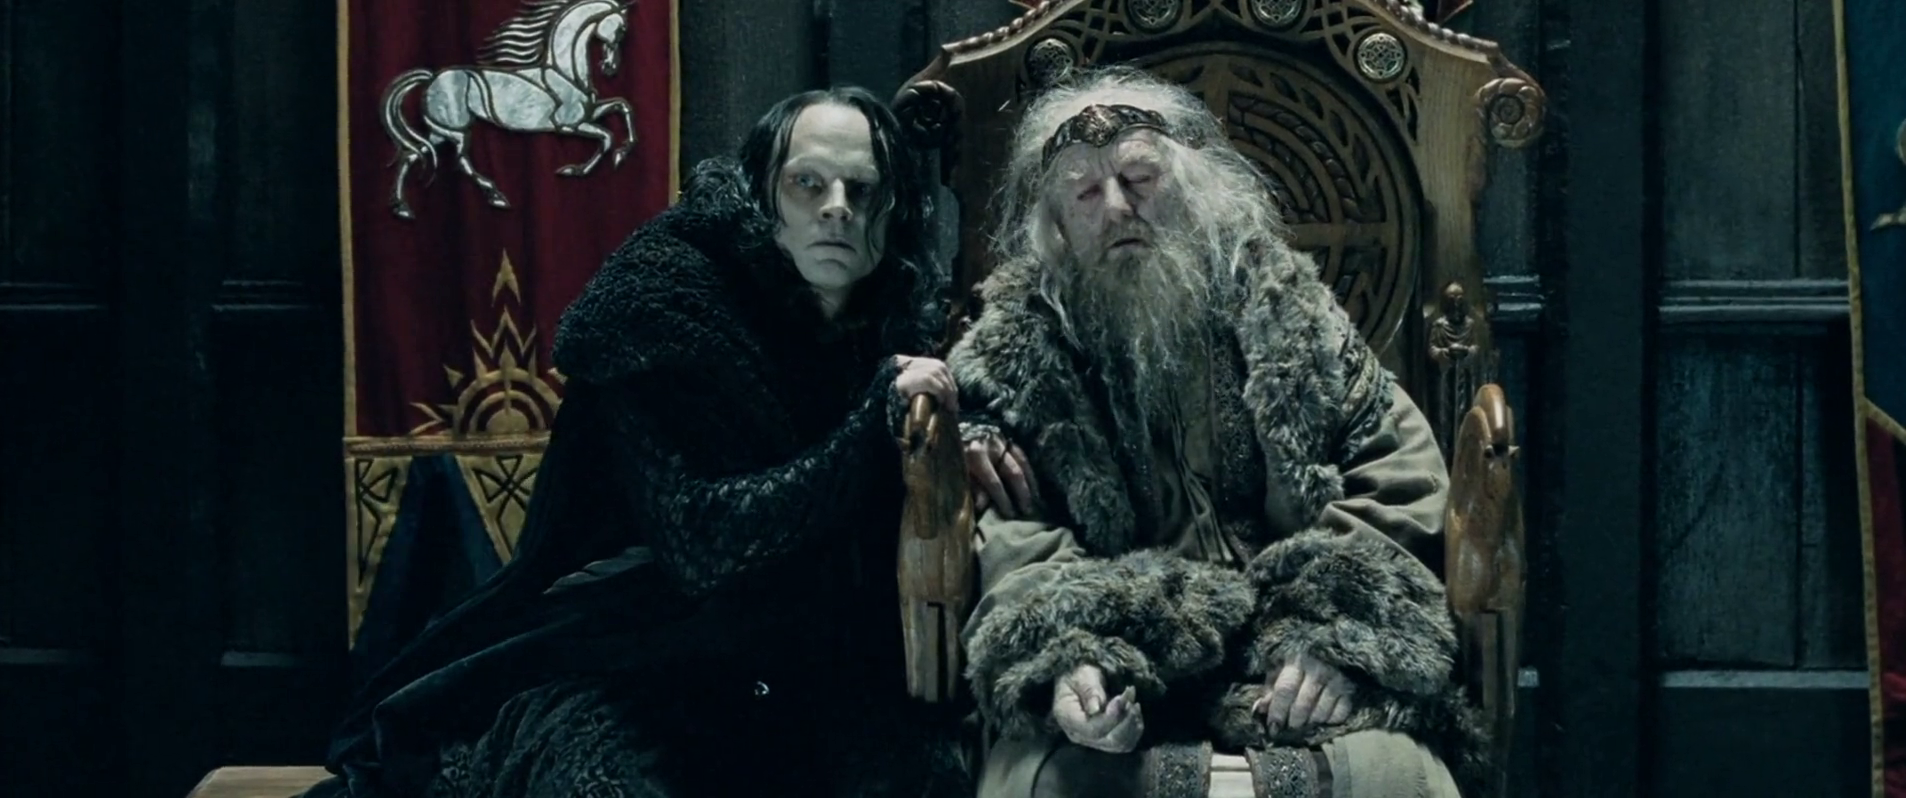 Grima_and_King_Theoden_-_Two_Towers